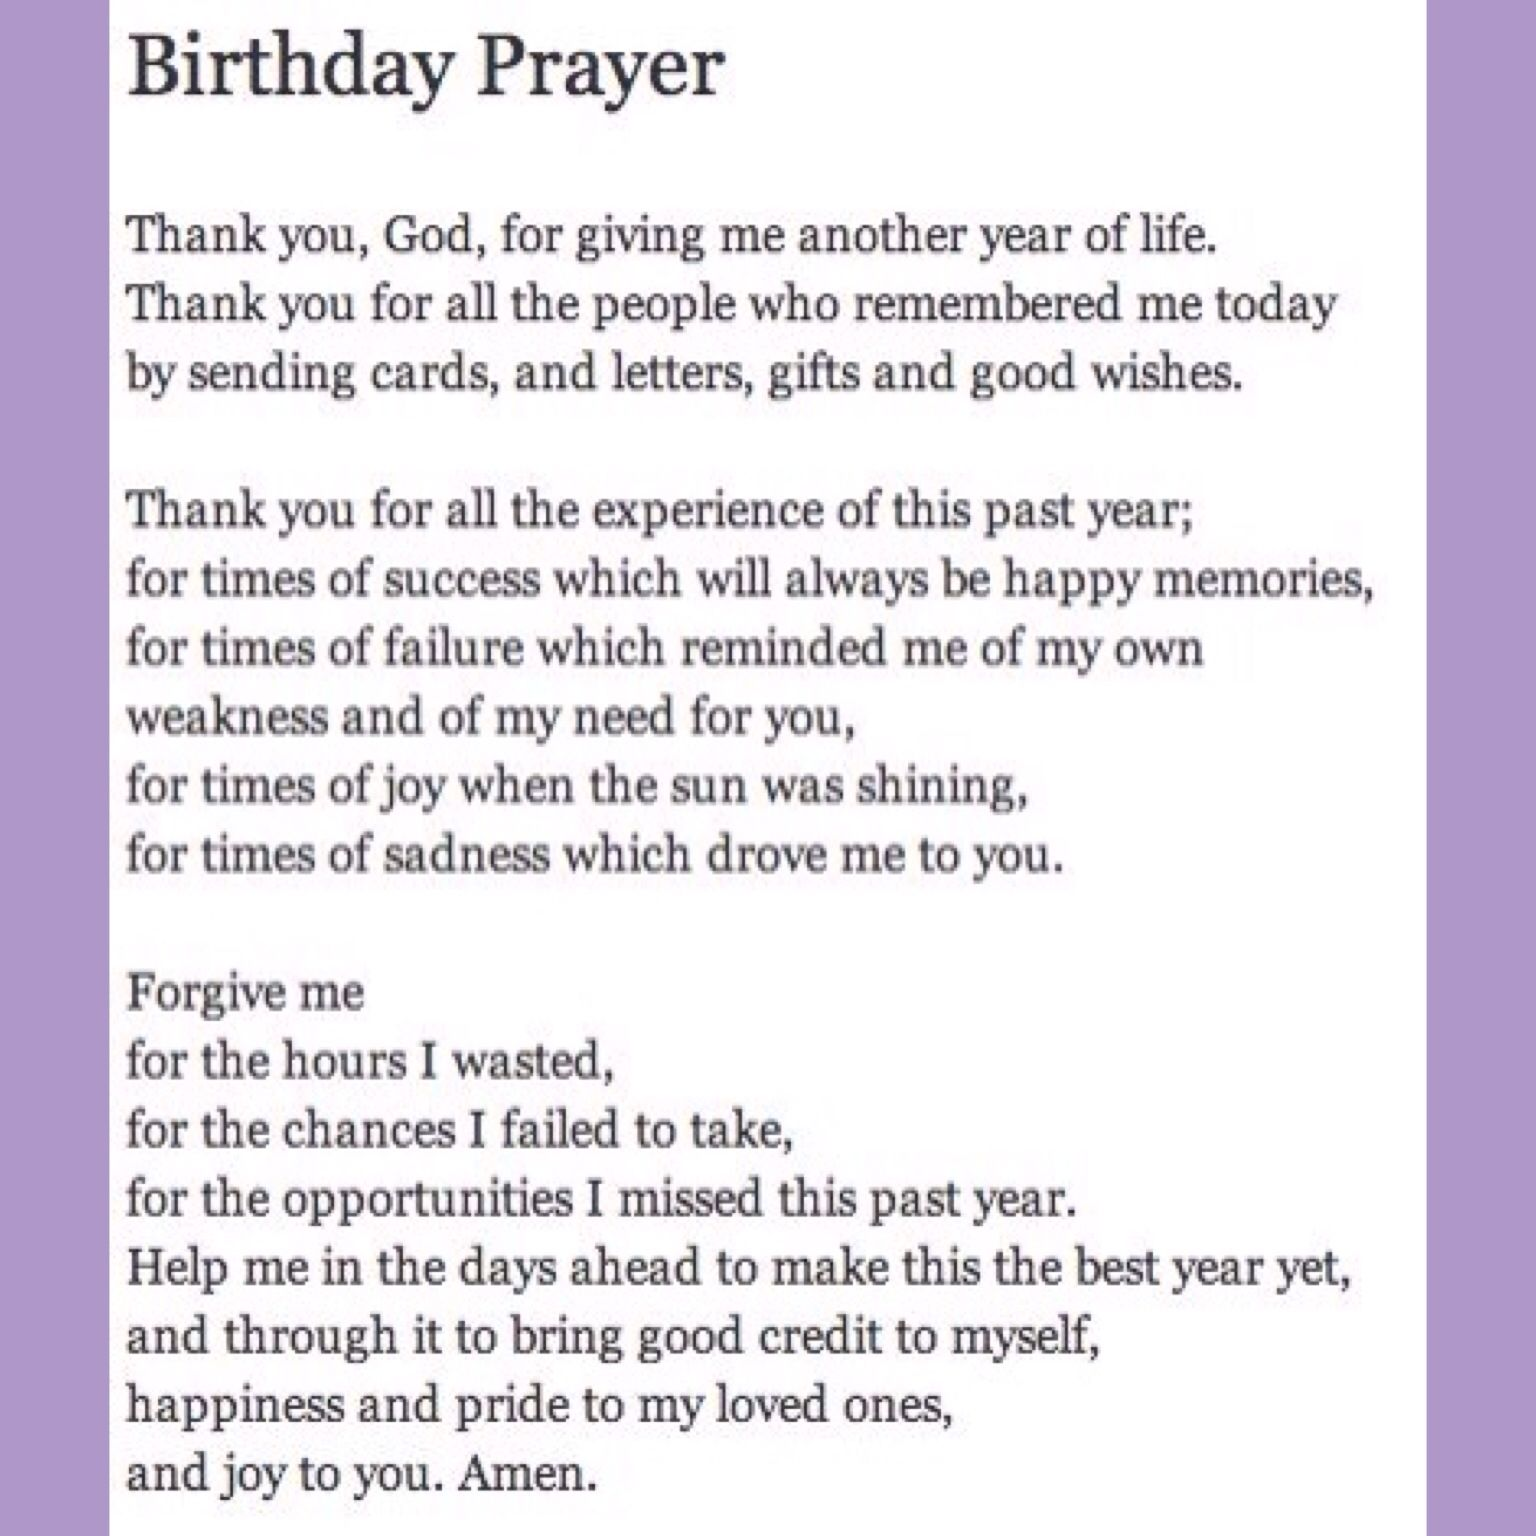 Blessed To Be Alive Another Year Birthday Prayer For Me Its My Quotes